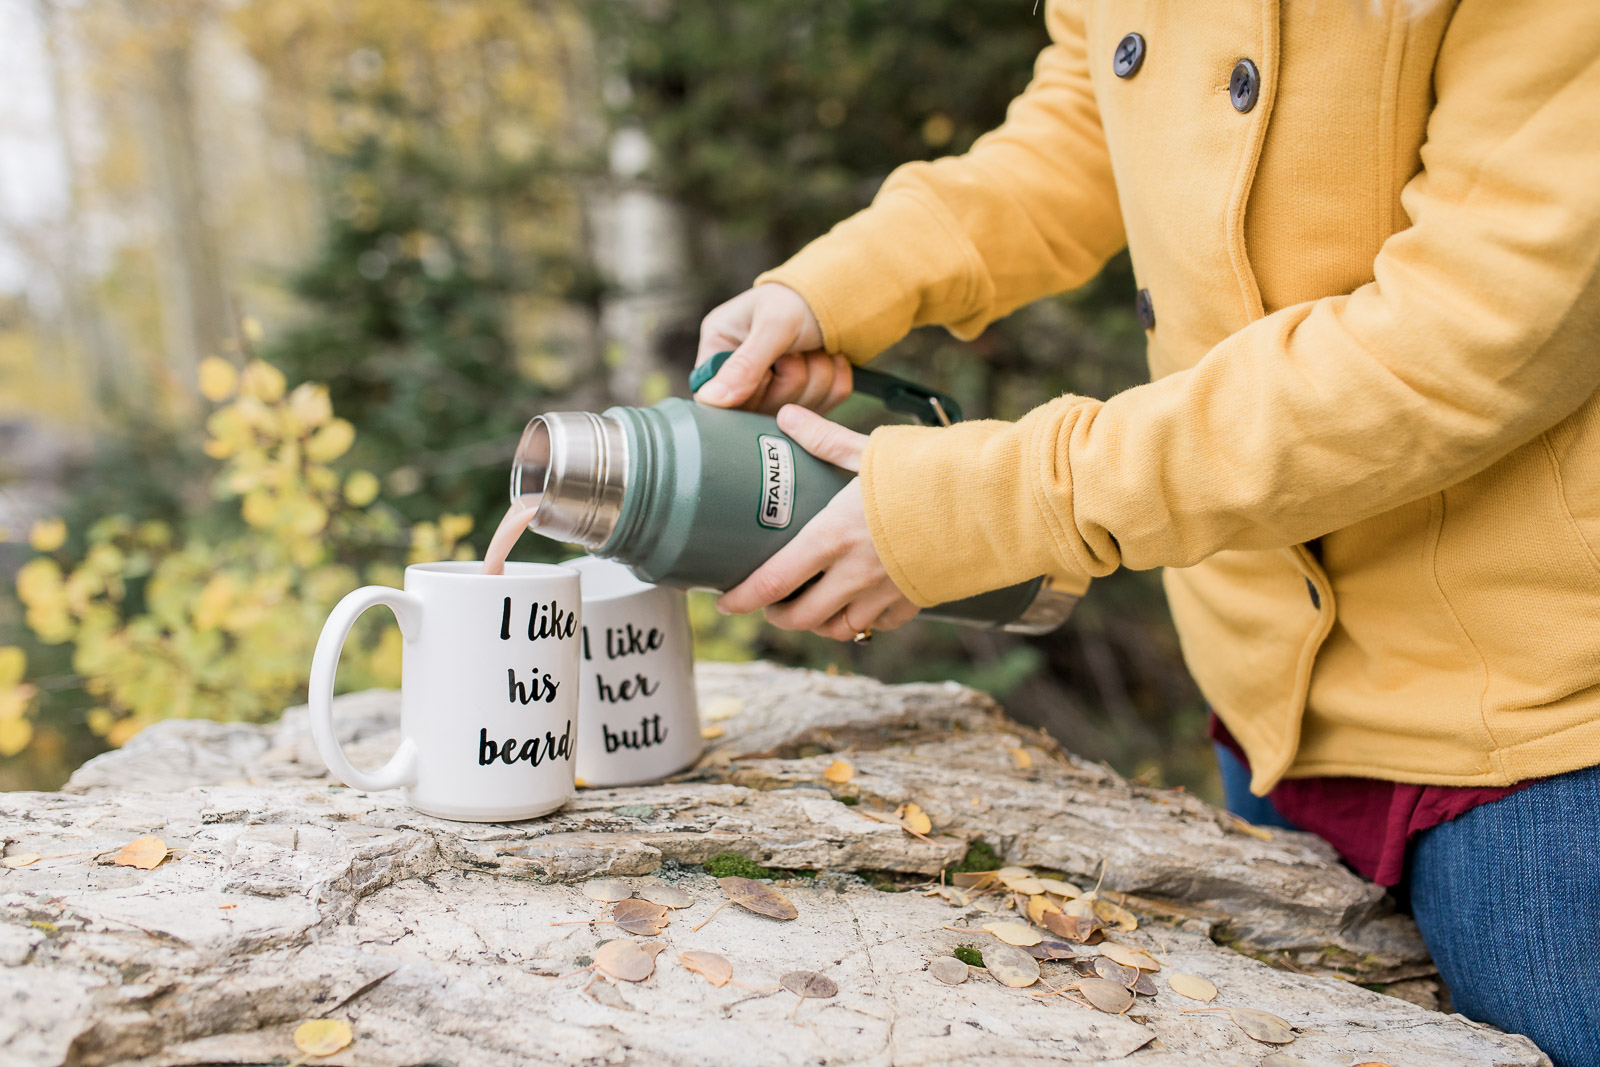 Engagement photos with hot chocolate in the fall